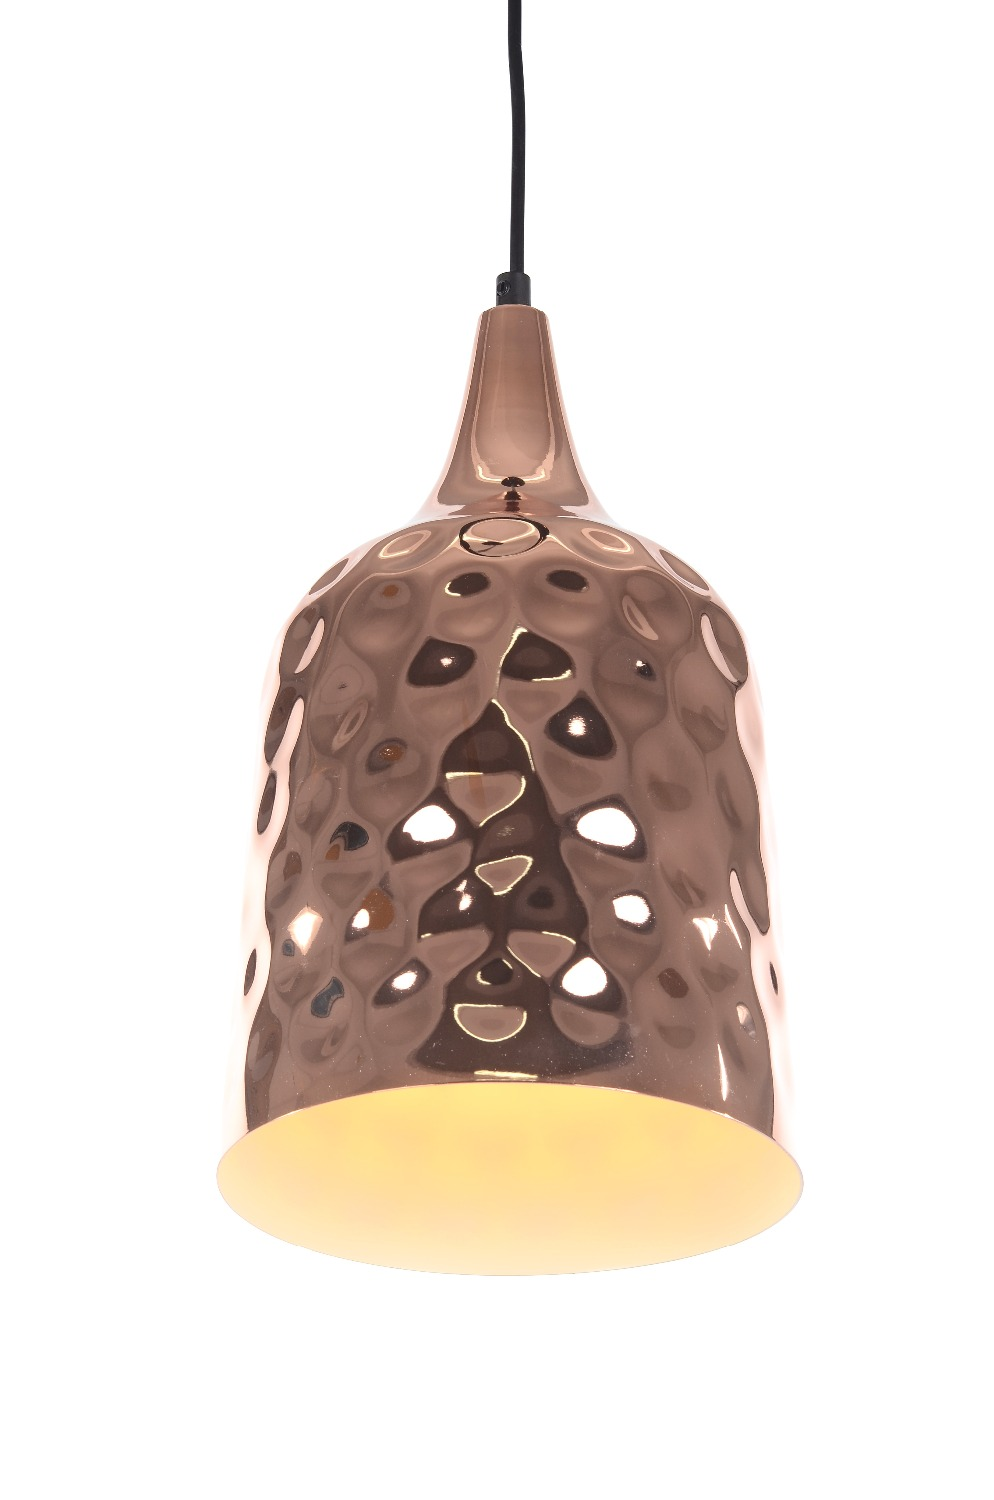 free shipping 60049S Modern North European style scale shape electroplated copper color pendant light pendant lamp цены онлайн